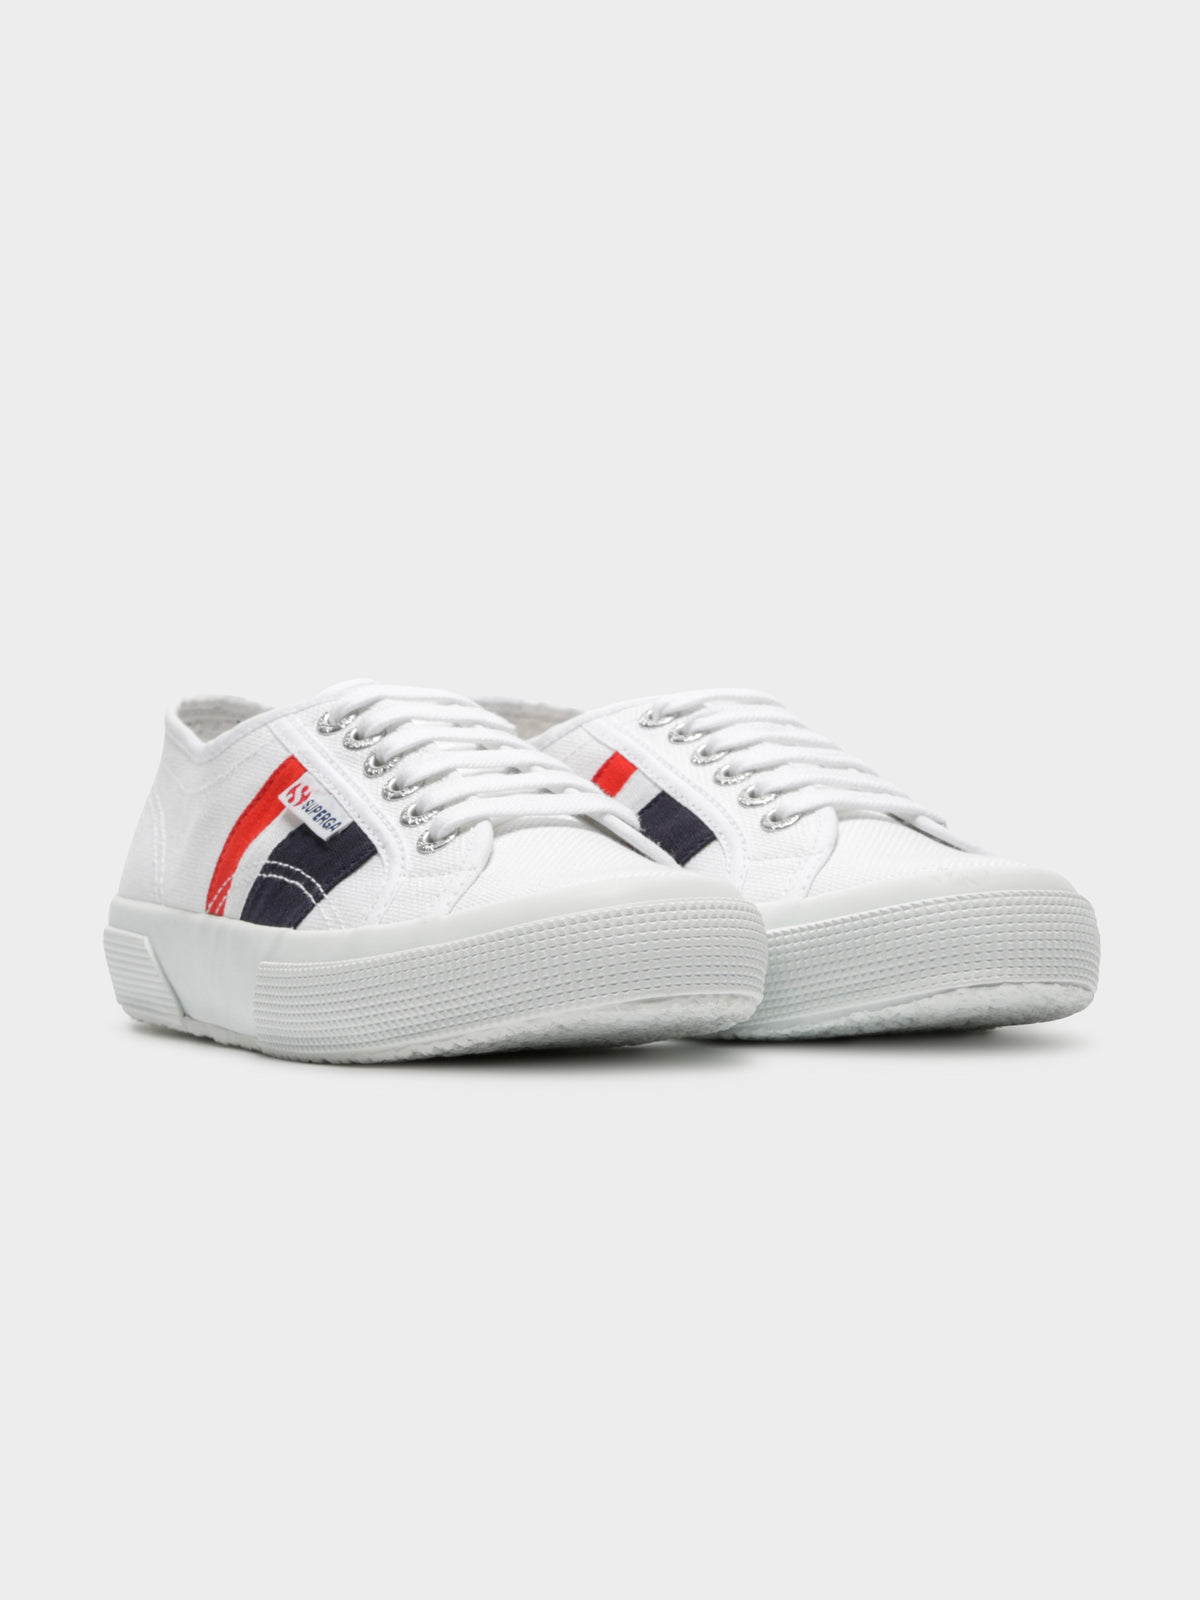 Womens 2750 Cotuflagside Sneakers in White Blue & Red